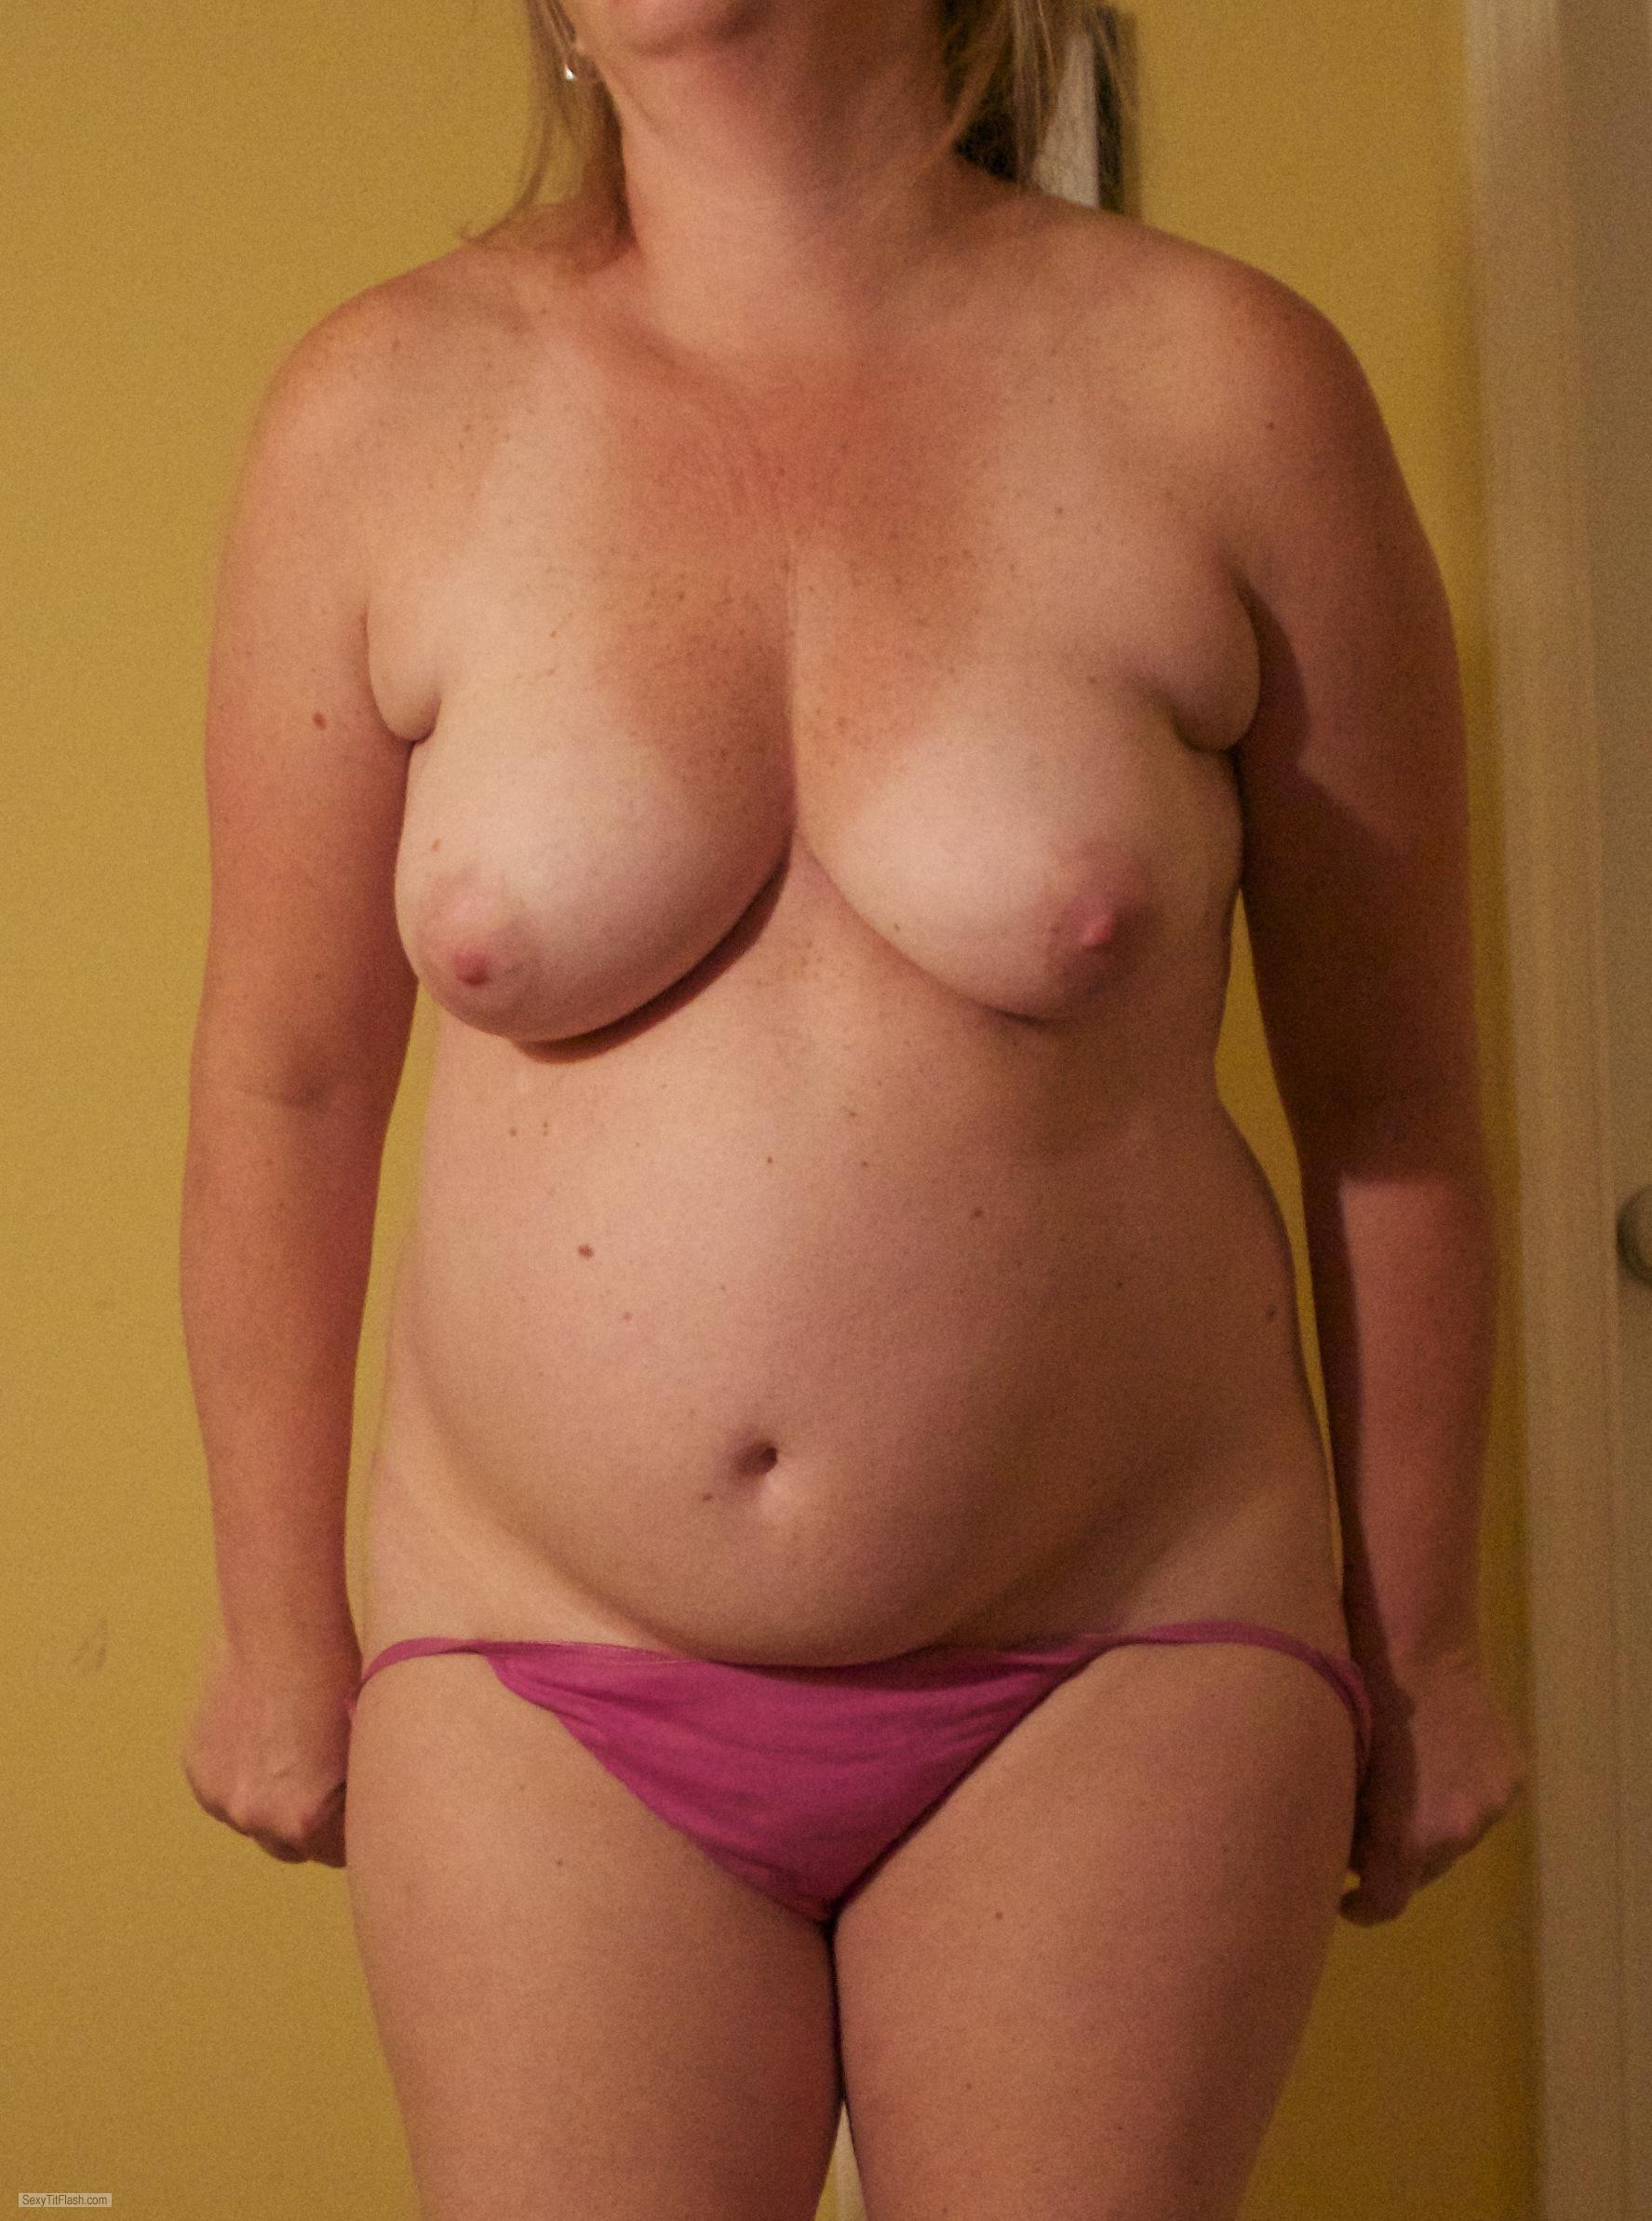 Tit Flash: My Medium Tits - Chubbywhore from United States